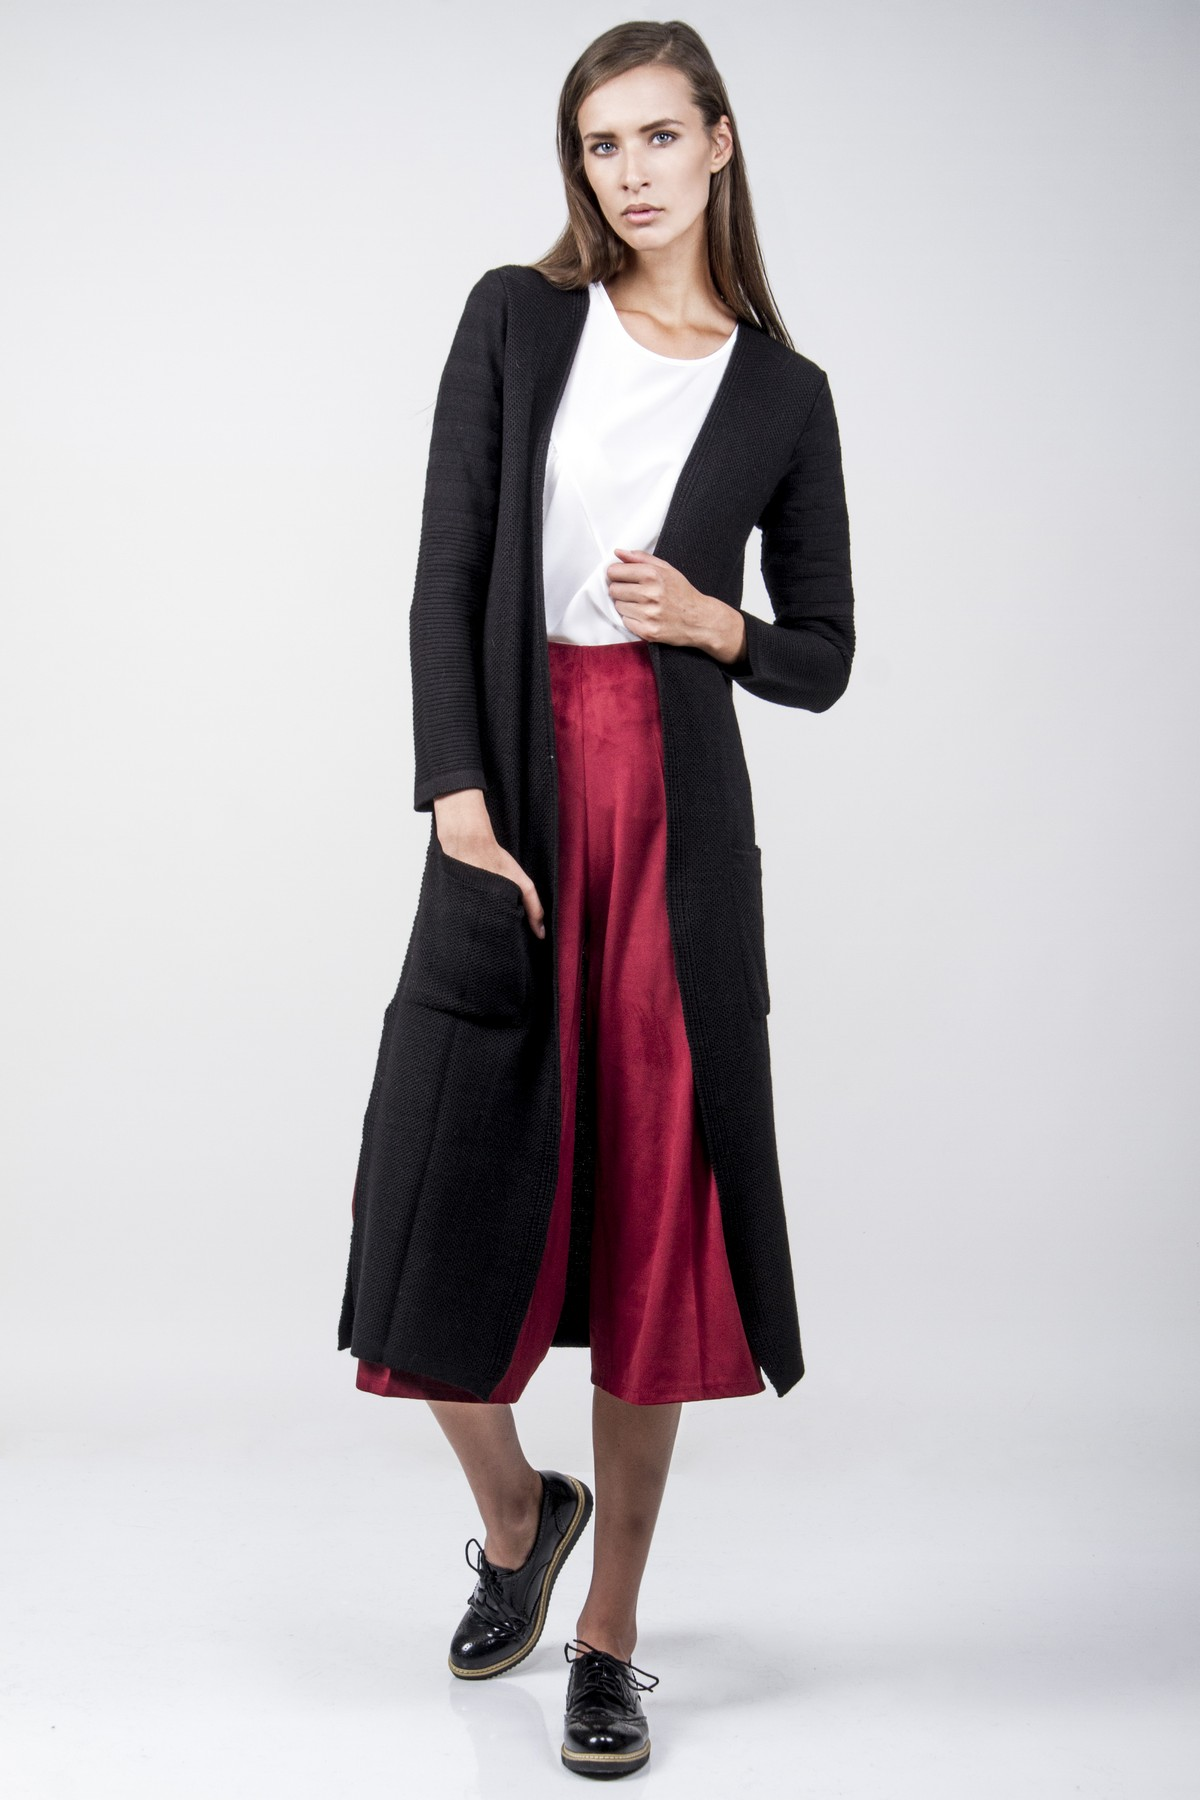 Longline cardigan with links and pockets - aggel.eu